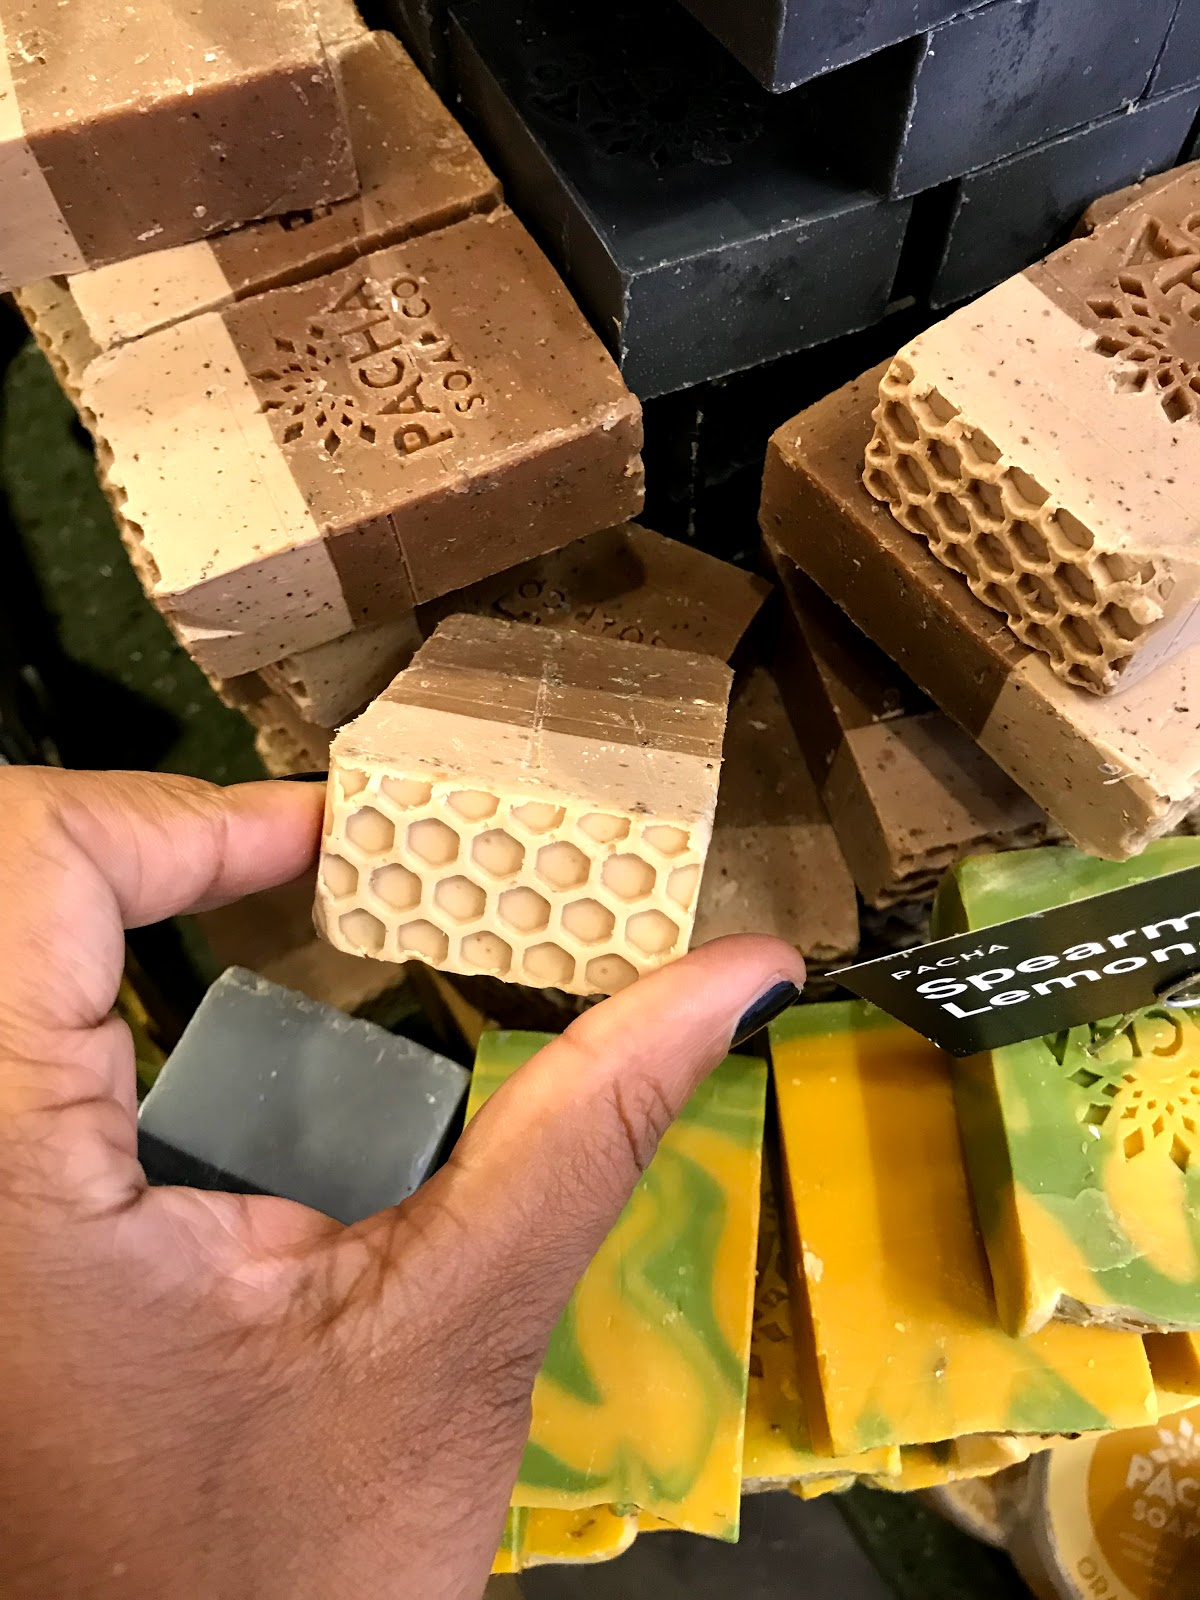 Image:Tangie Bell buys natural bee soap from Whole Foods Grocery store.